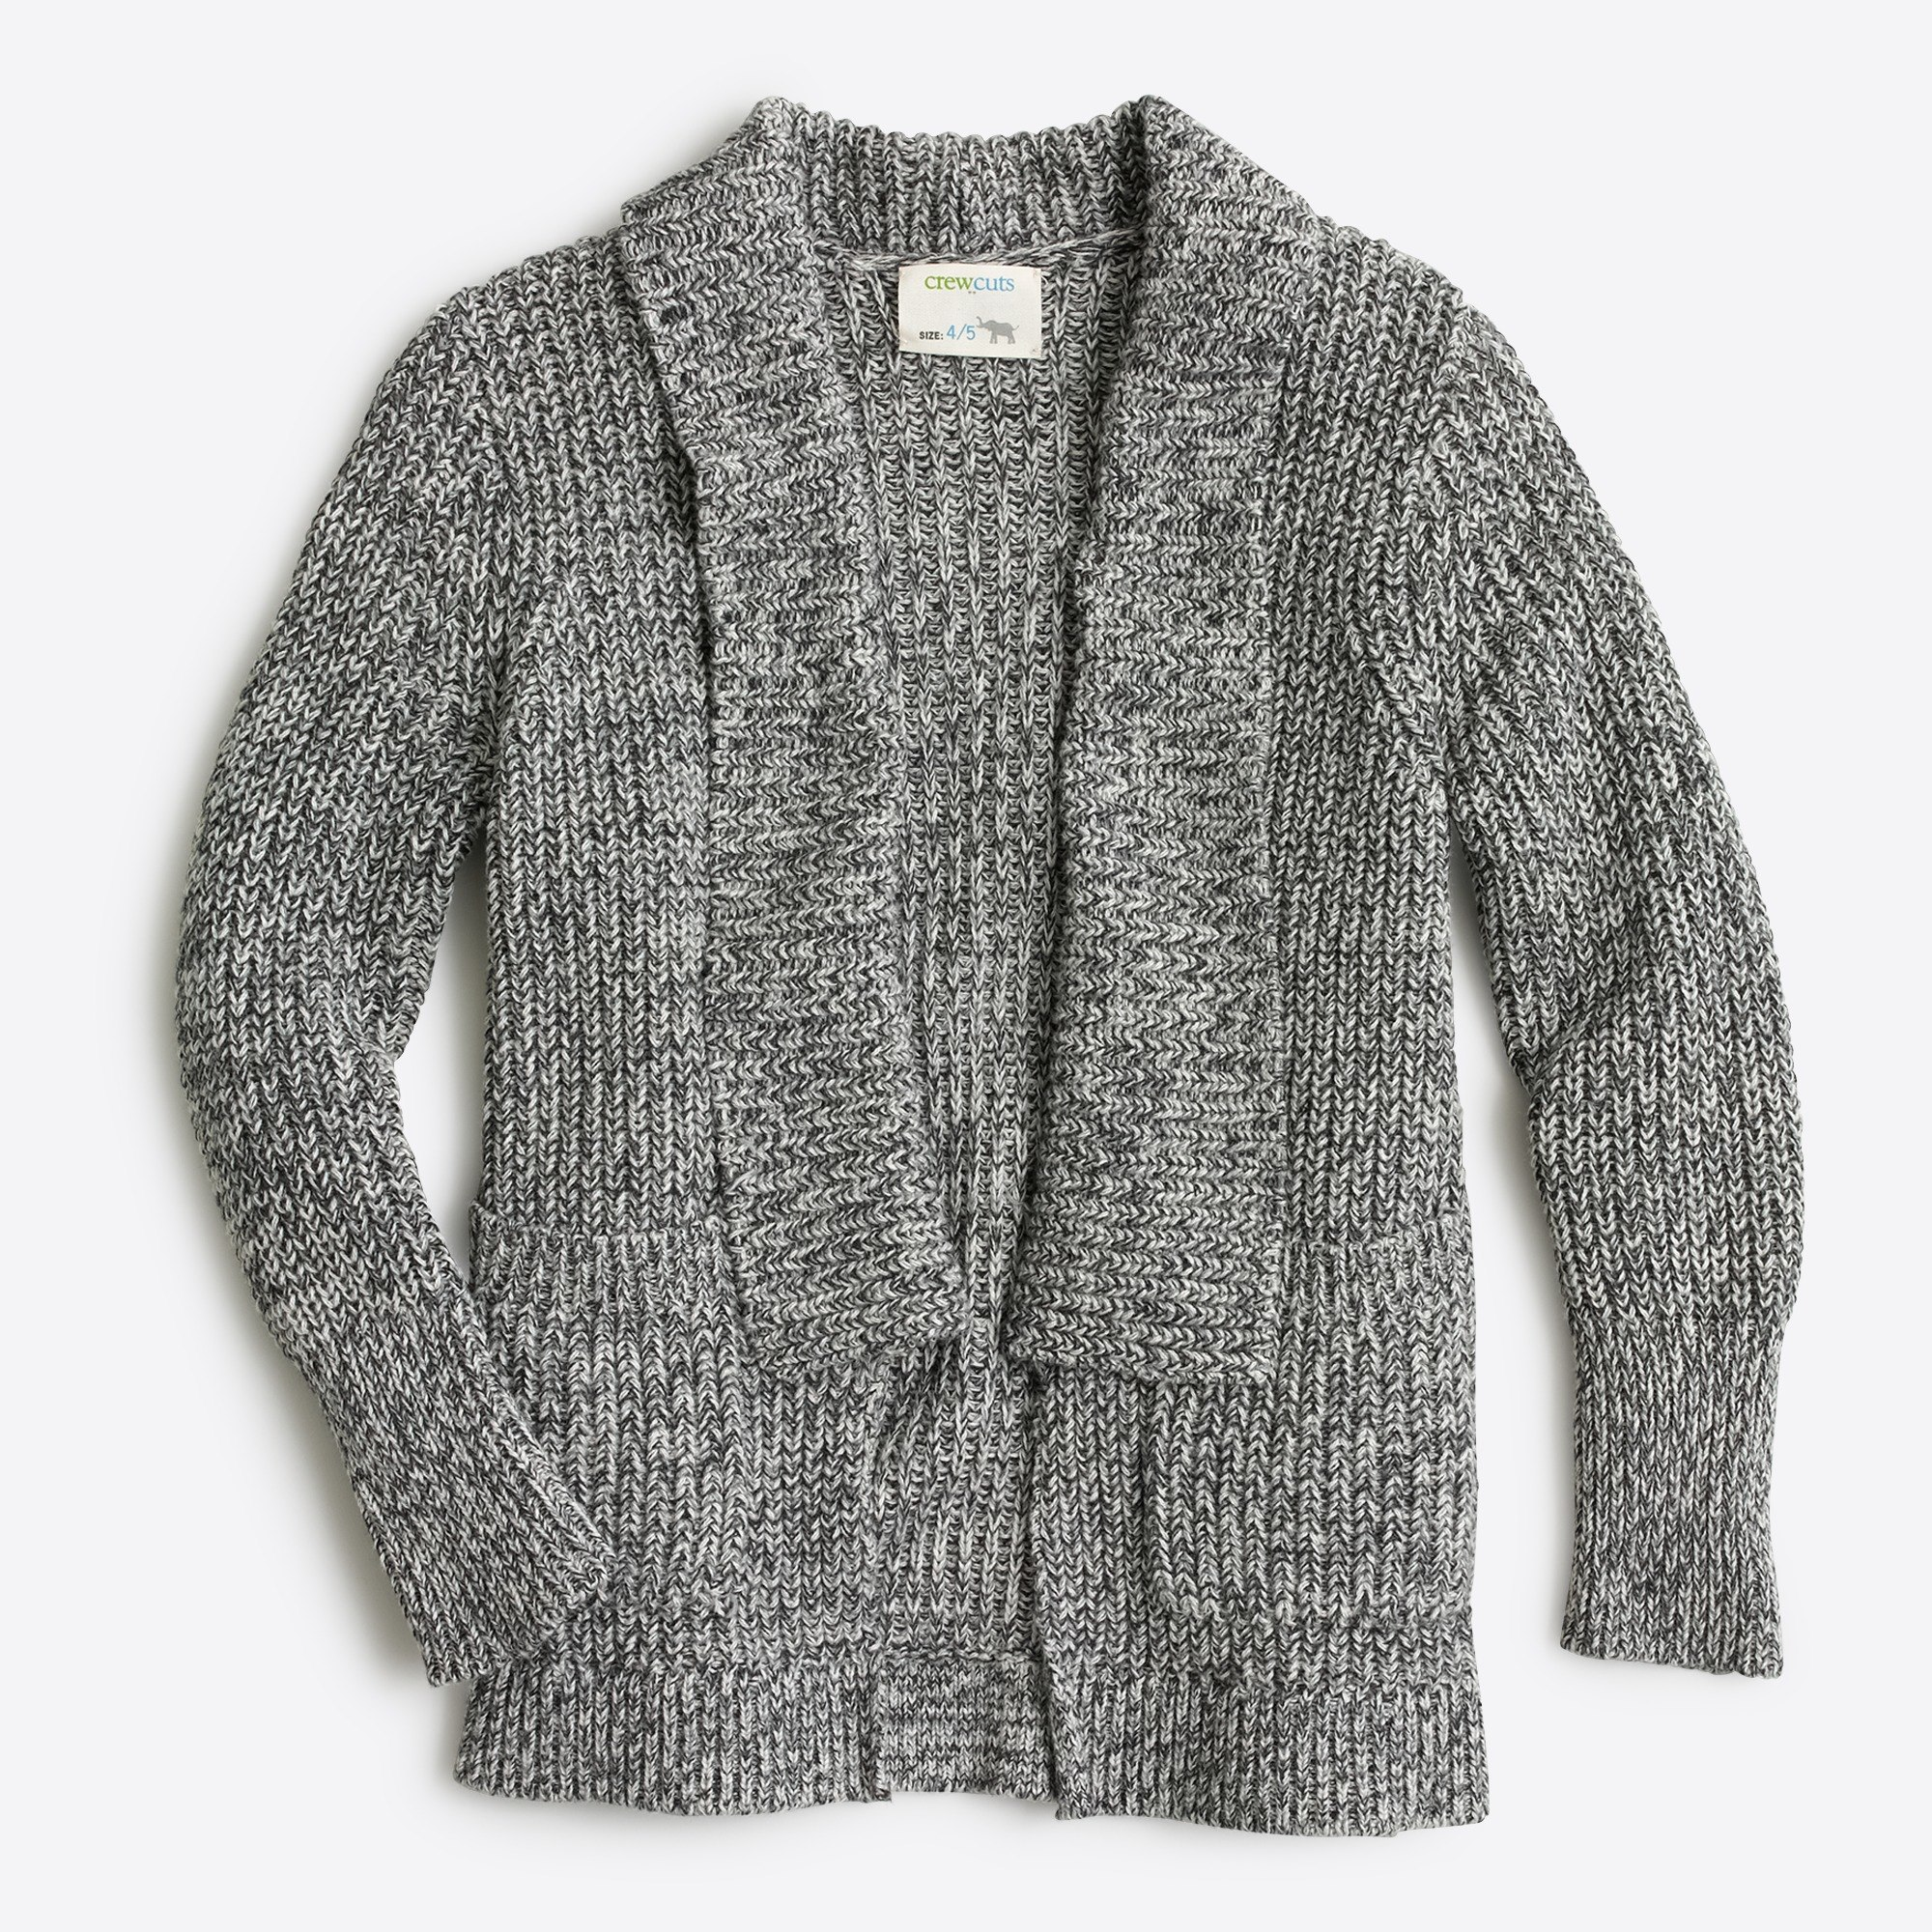 Girls' marled rib-stitch open cardigan sweater : FactoryGirls